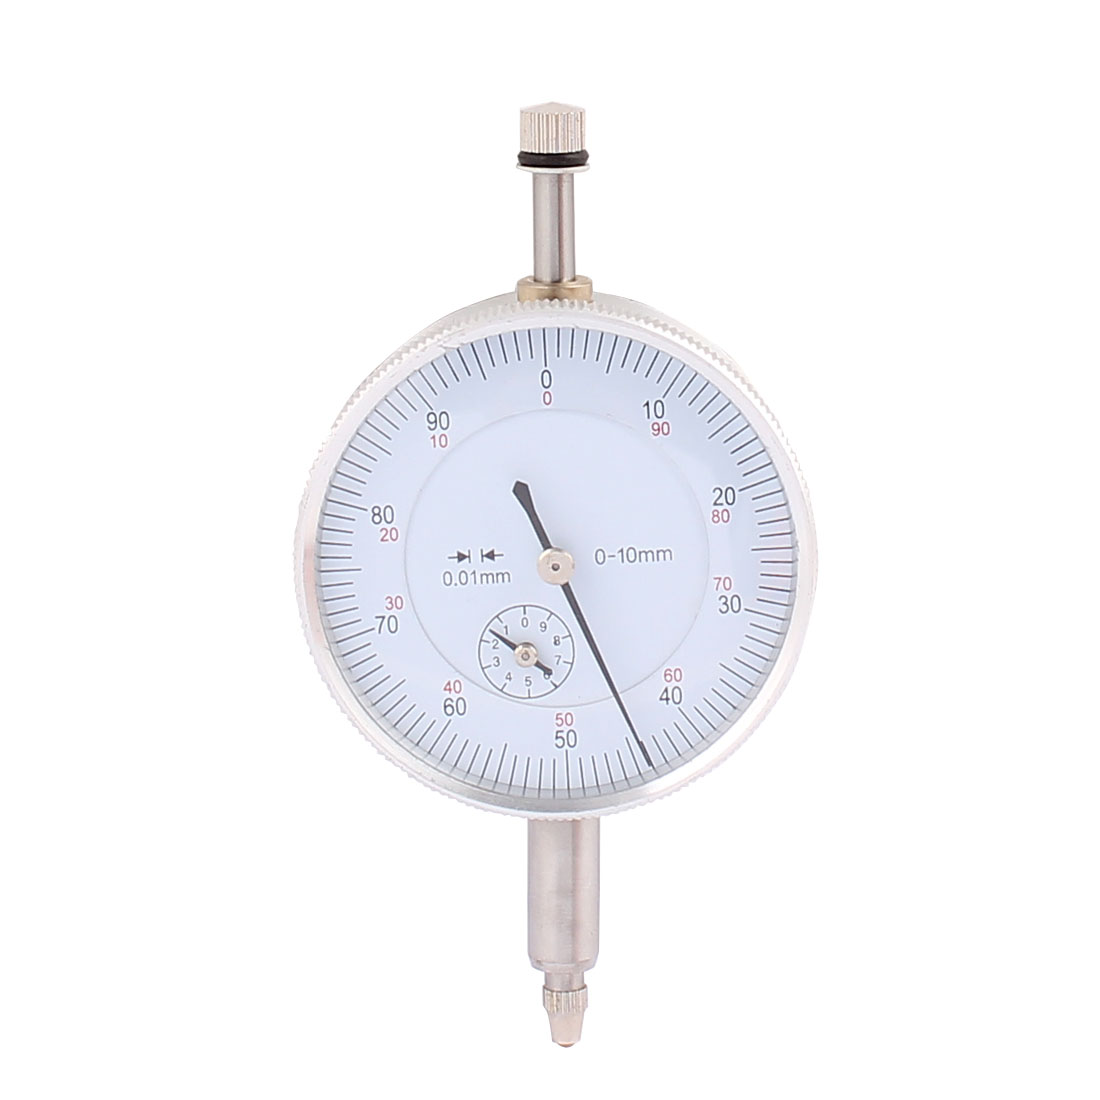 0.02mm Accuracy Measurement Instrument Dial Indicator Gauge Precision Tool